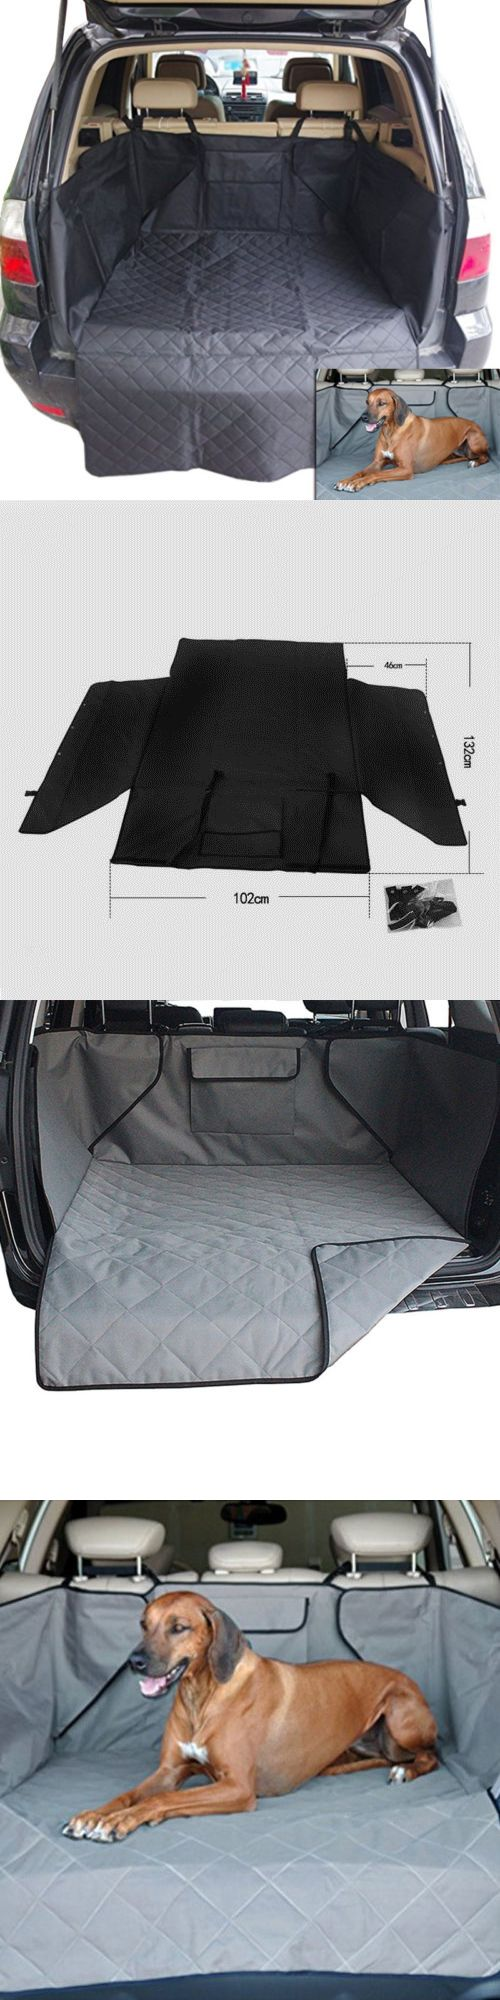 Car Seat Covers 117426: For Pet Dog Back Rear Seat Bench Mat Cover Auto Car Waterproof 600D Oxford Suv -> BUY IT NOW ONLY: $32.84 on eBay!